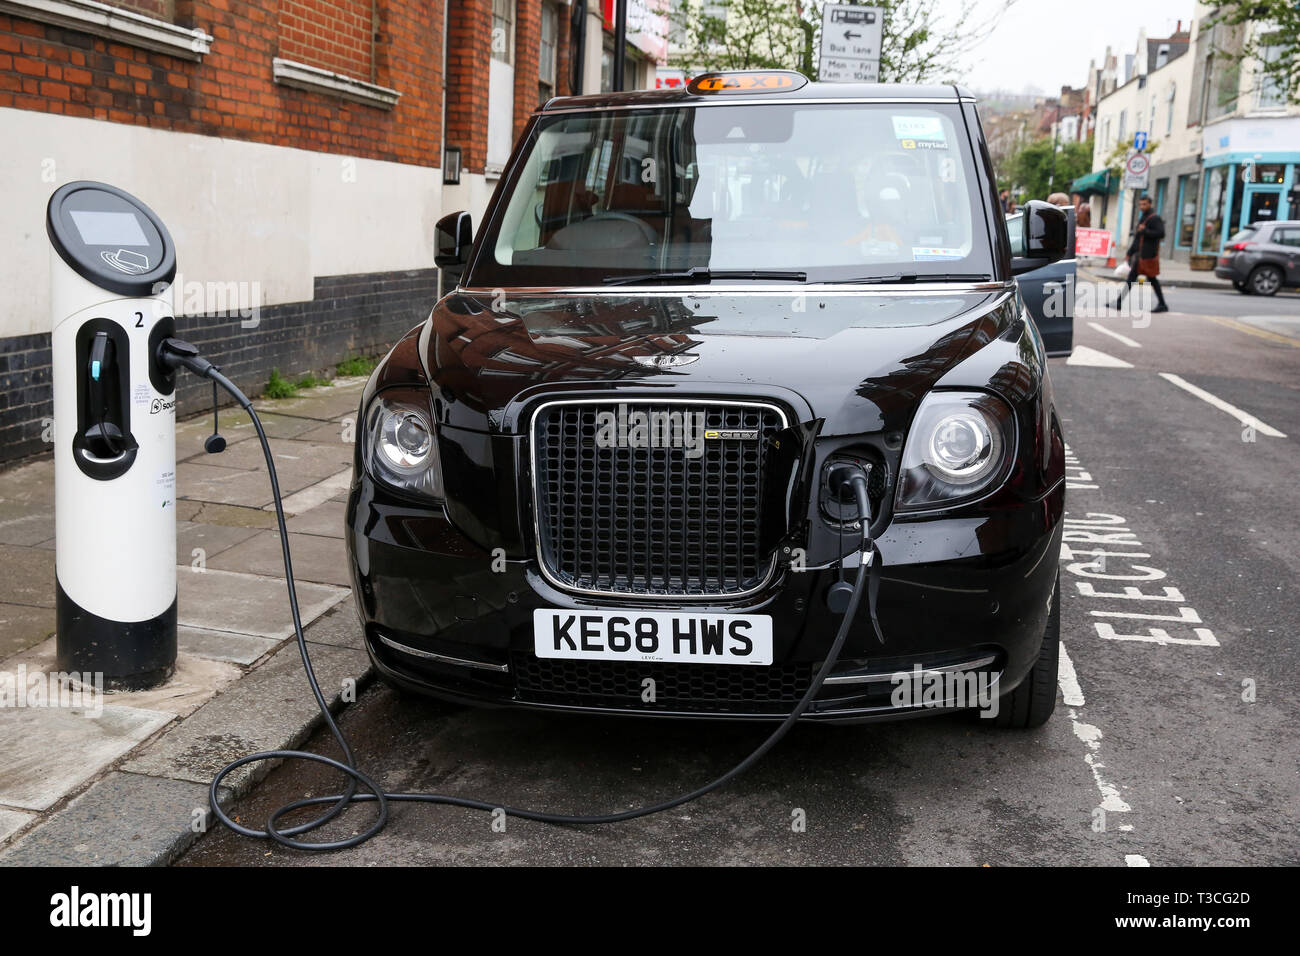 A black London taxi is seen using the electric car charging point in London.   To help improve air quality, an Ultra-Low Emission Zone (ULEZ) which came into force on Monday 8 April 2019, now operates 24 hours a day, 7 days a week, within the same area of central London as the Congestion Charge.  Drivers must meet the ULEZ emissions standards or have to pay a daily charge, in addition to Congestion Charge to drive within the zone, Black cabs are exempted from Ultra Low Emission Zone charge. - Stock Image